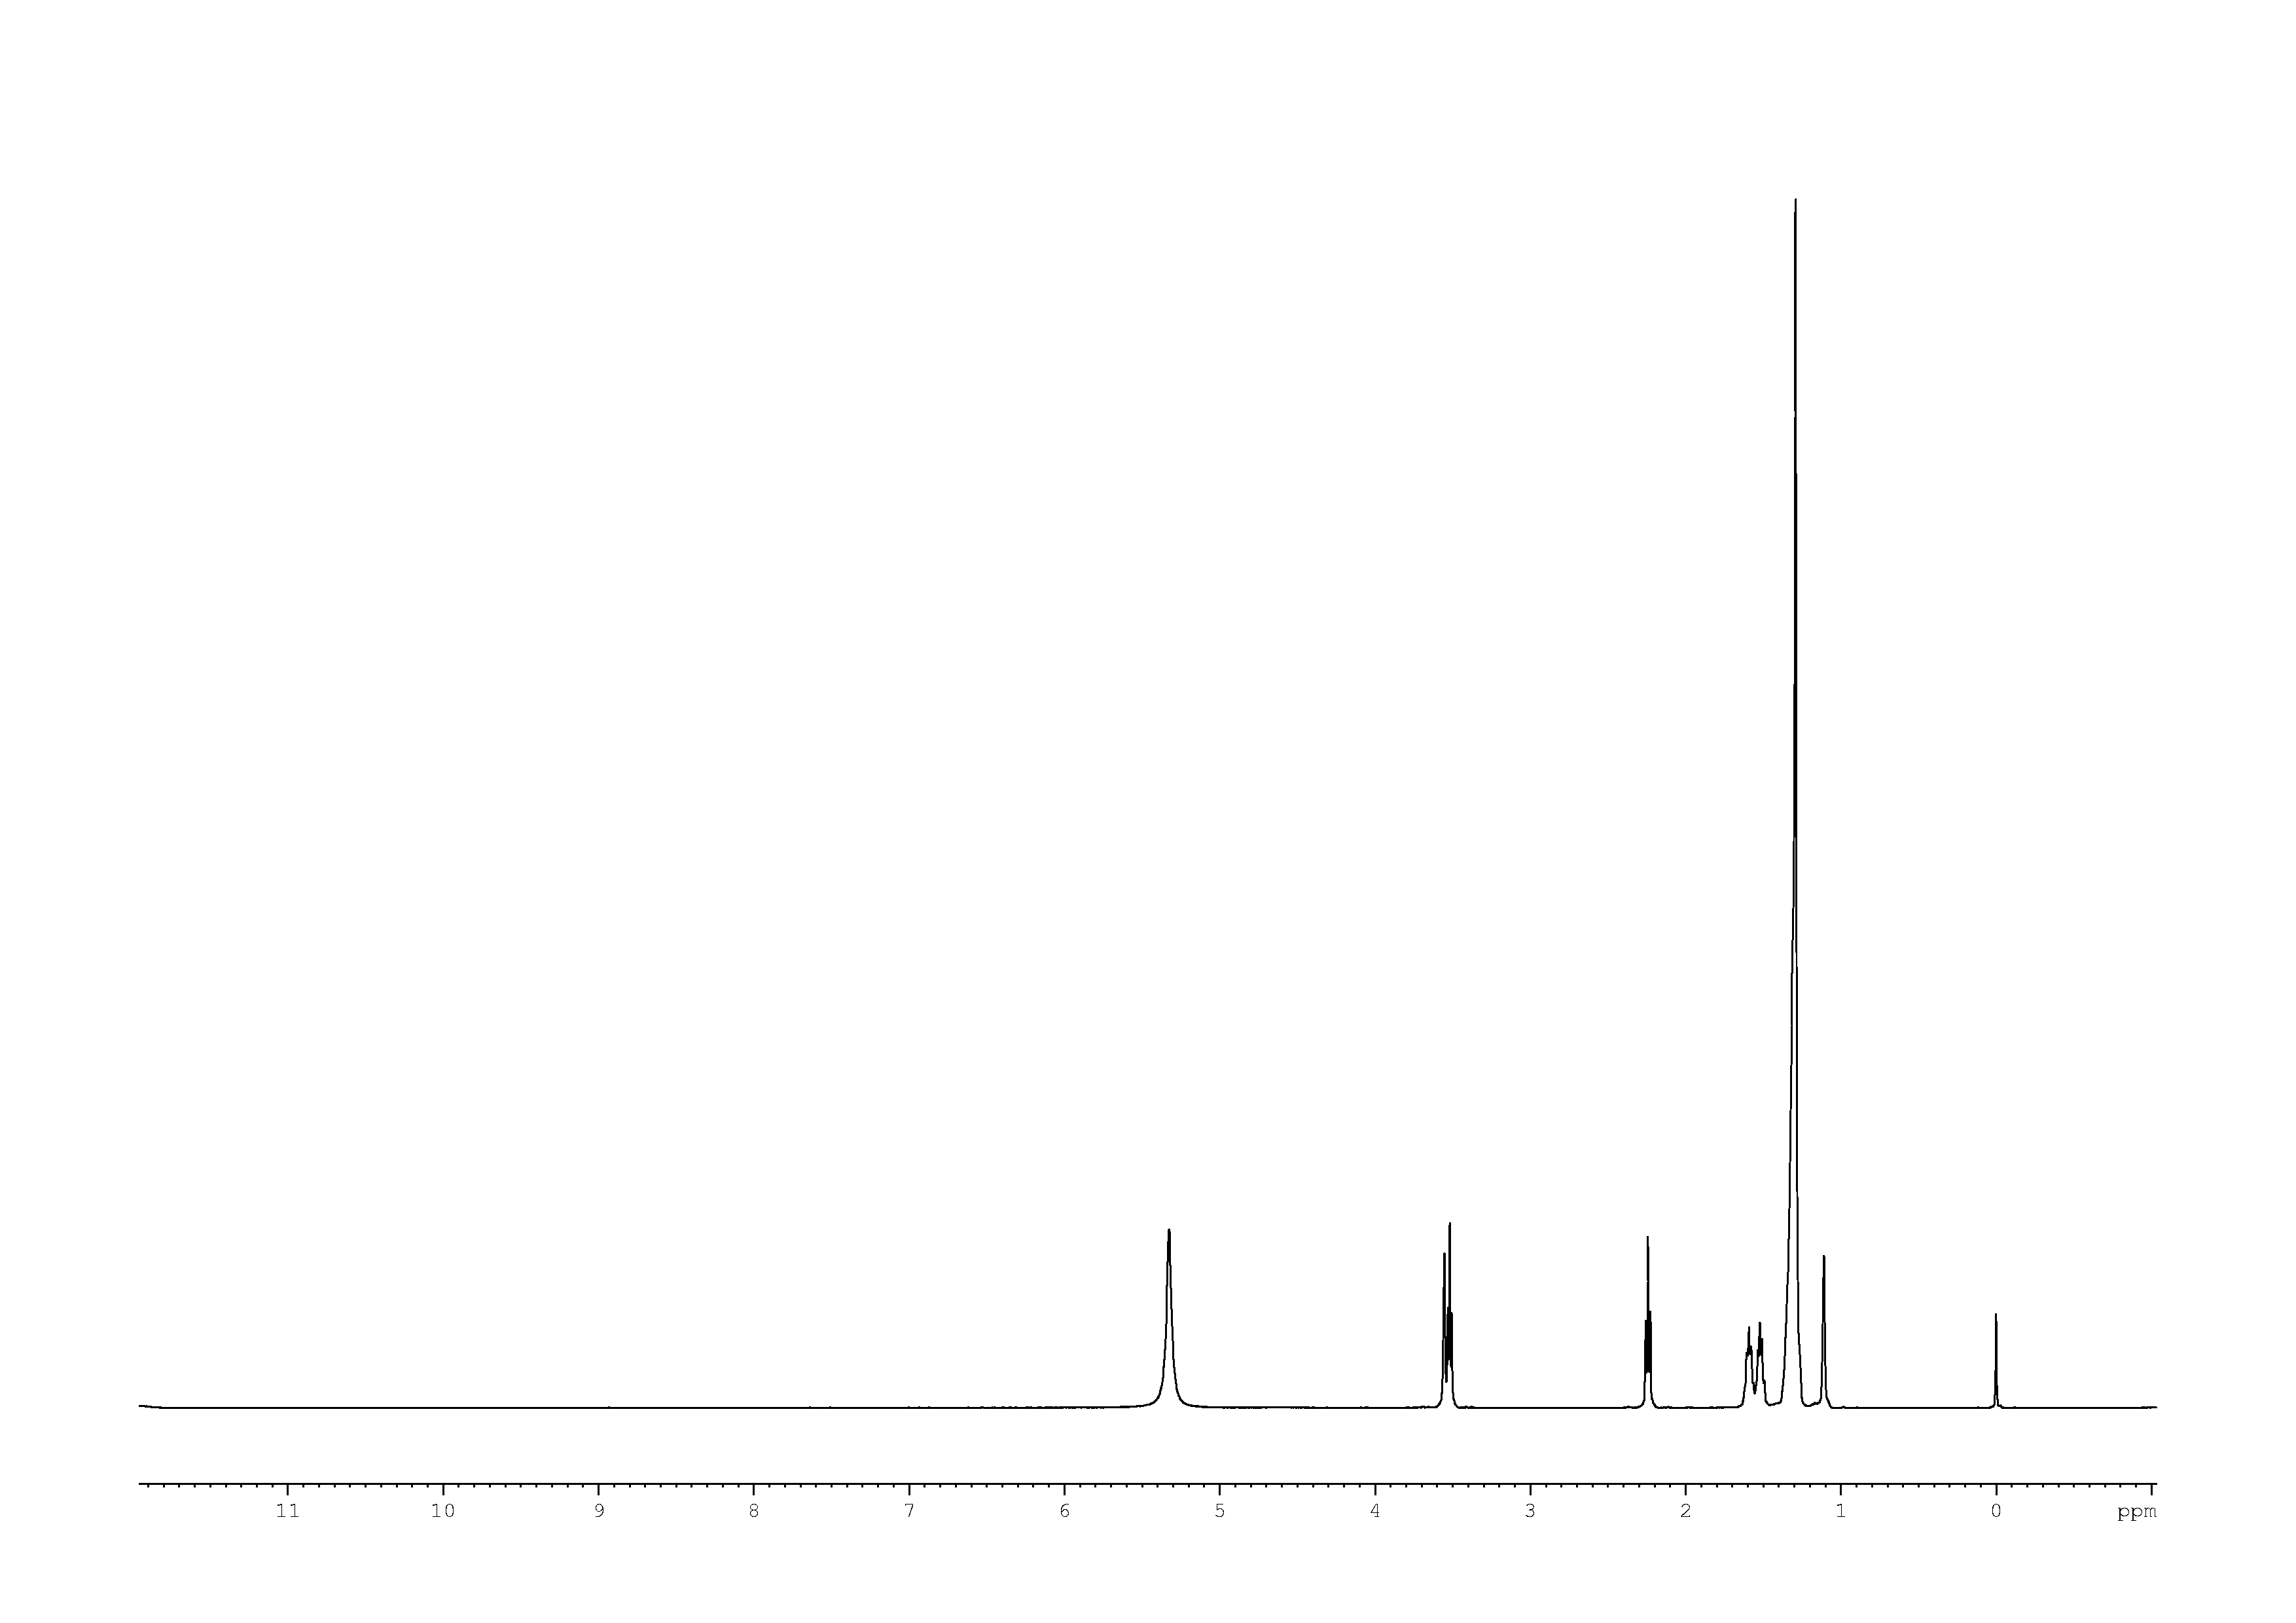 1D 1H, n/a spectrum for 16-hydroxyhexadecanoic acid